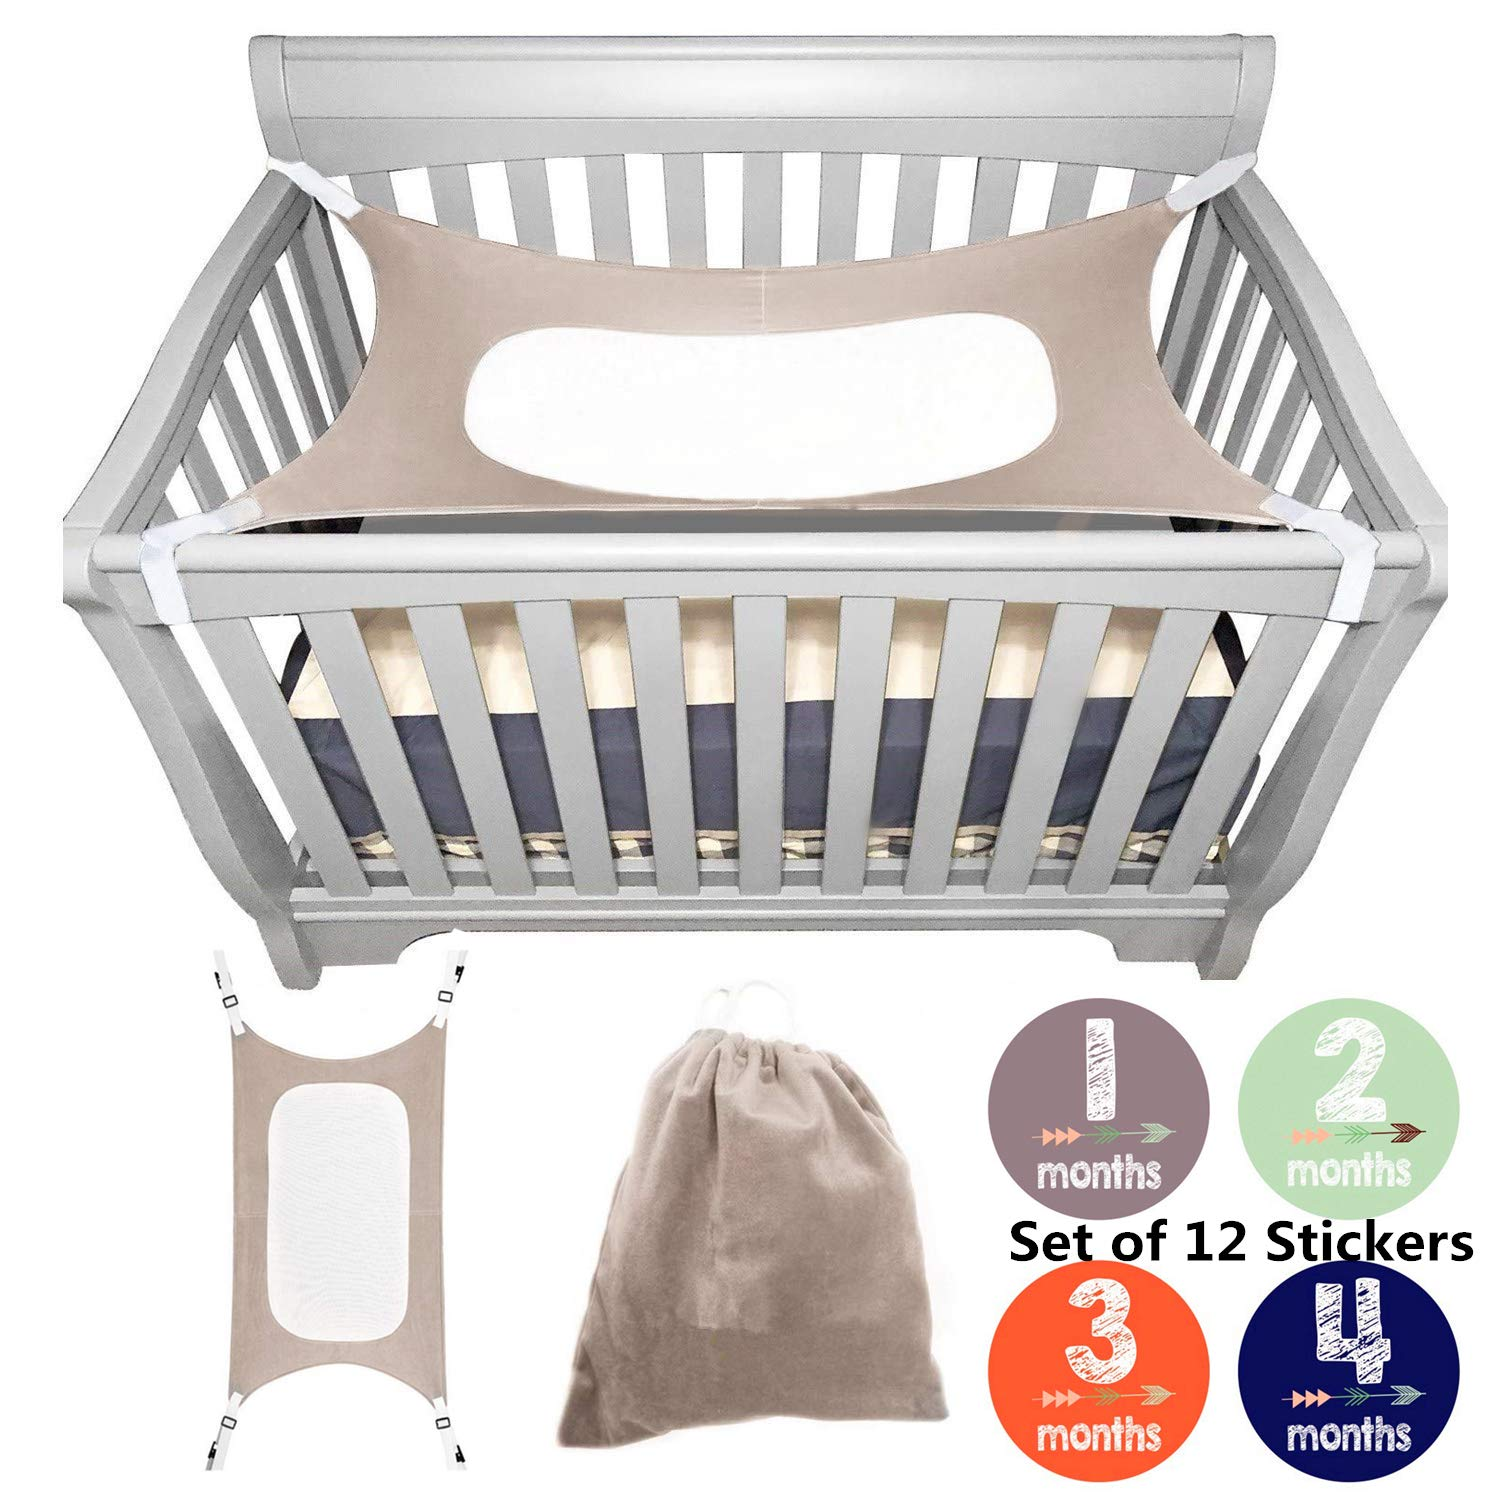 bopopo Baby Hammock for Crib - Mimics Mother's Womb - Infant Hammock 3-Layer Breathable Supportive Mesh Metal Buckle Grey